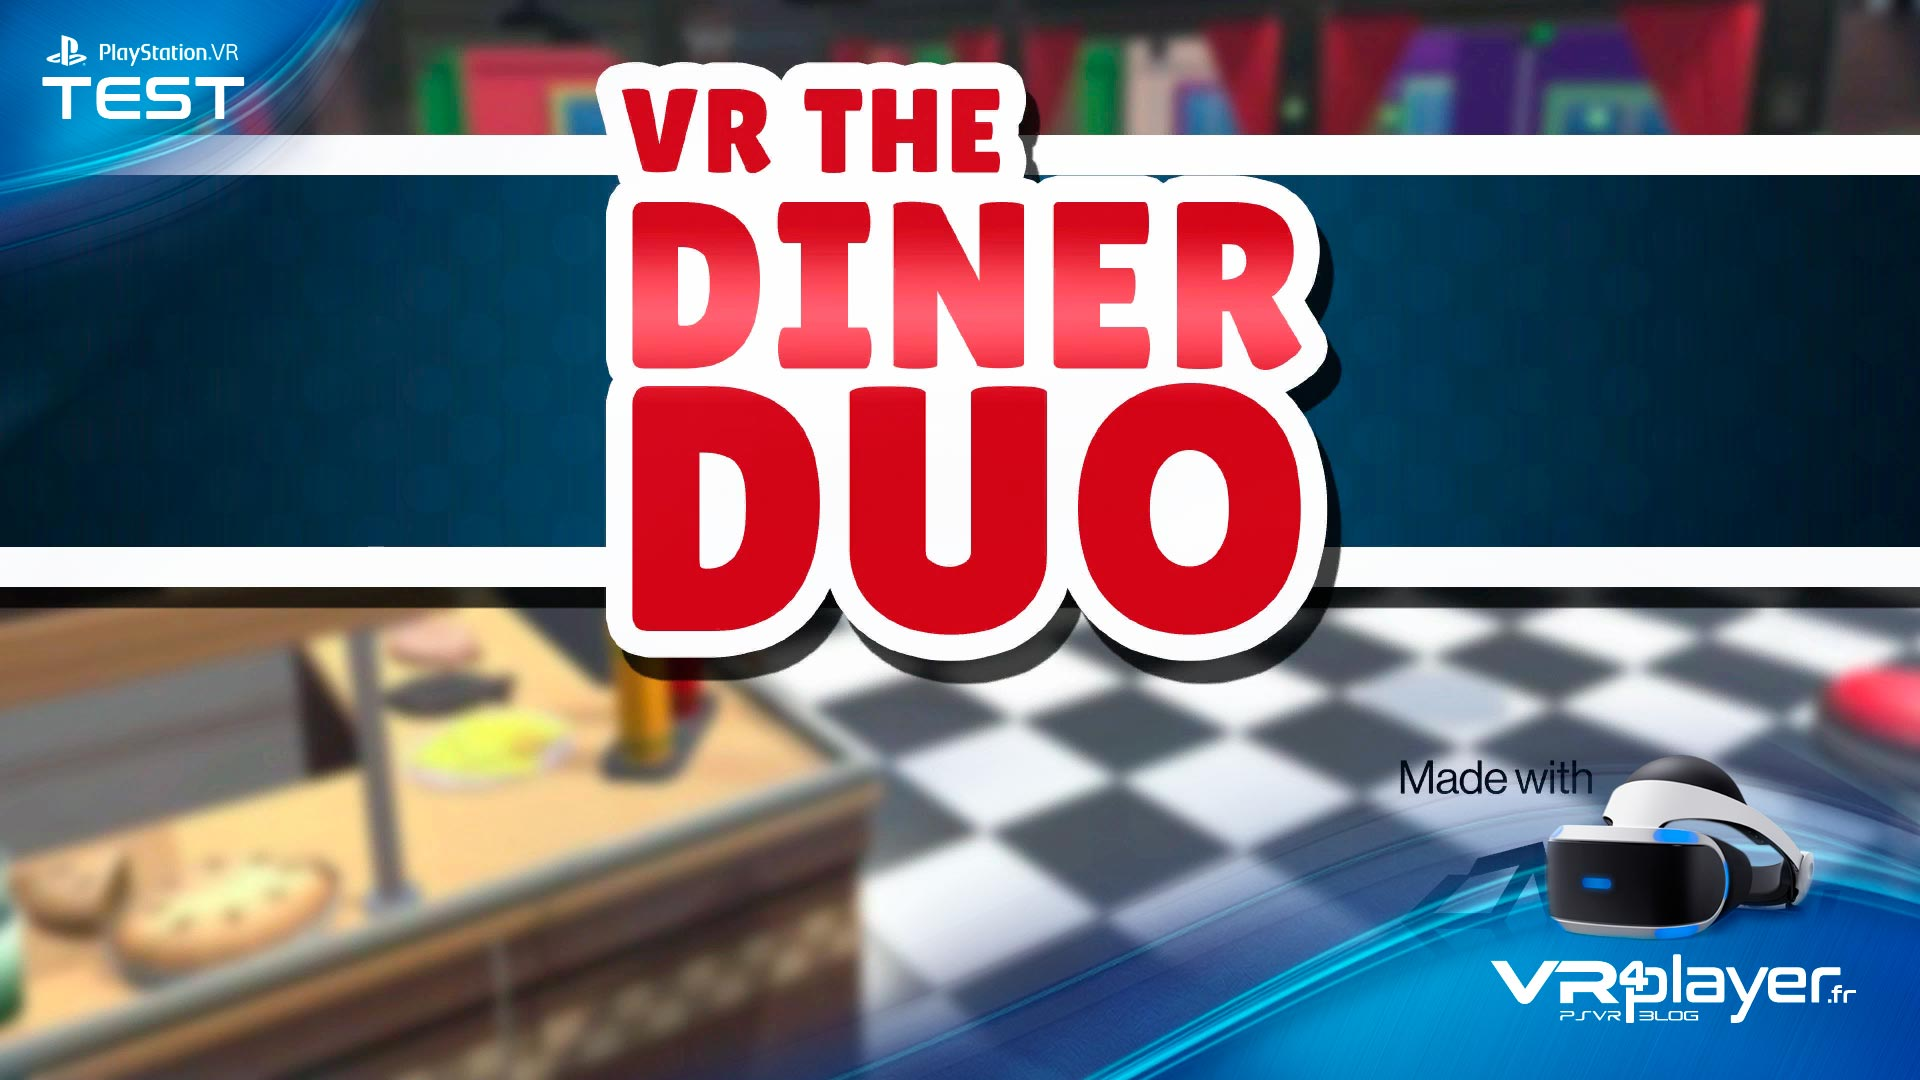 VR The Diner Duo Test Review PlayStation VR PSVR VR4player